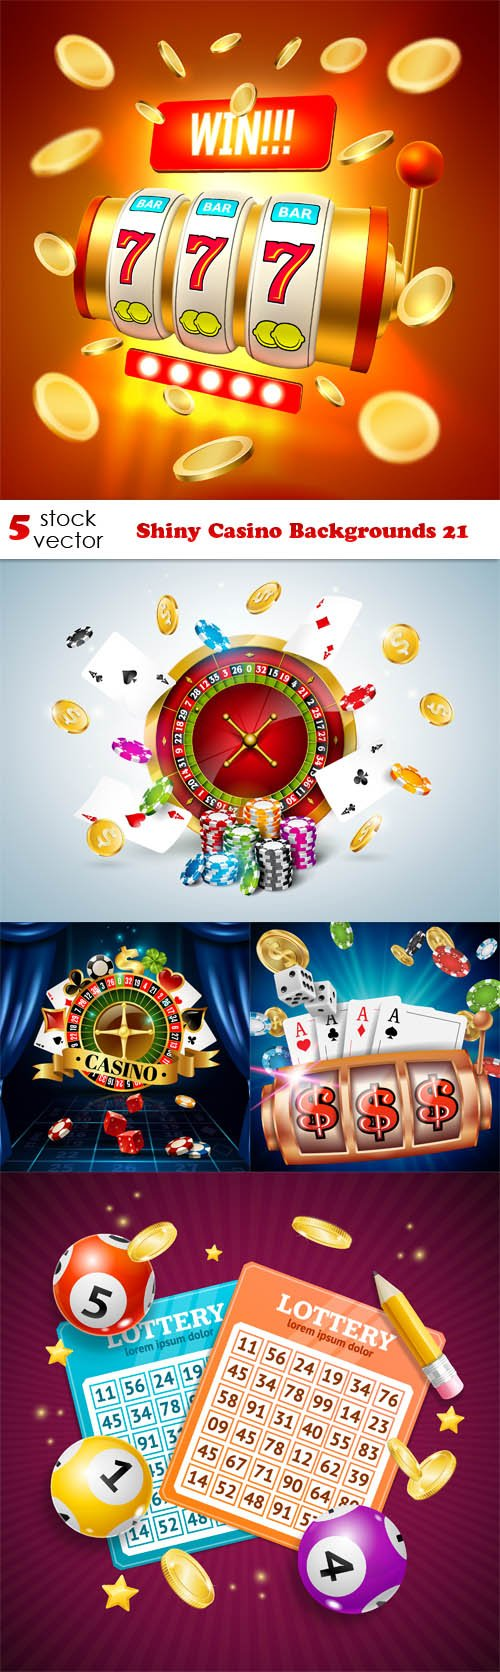 Vectors - Shiny Casino Backgrounds 21